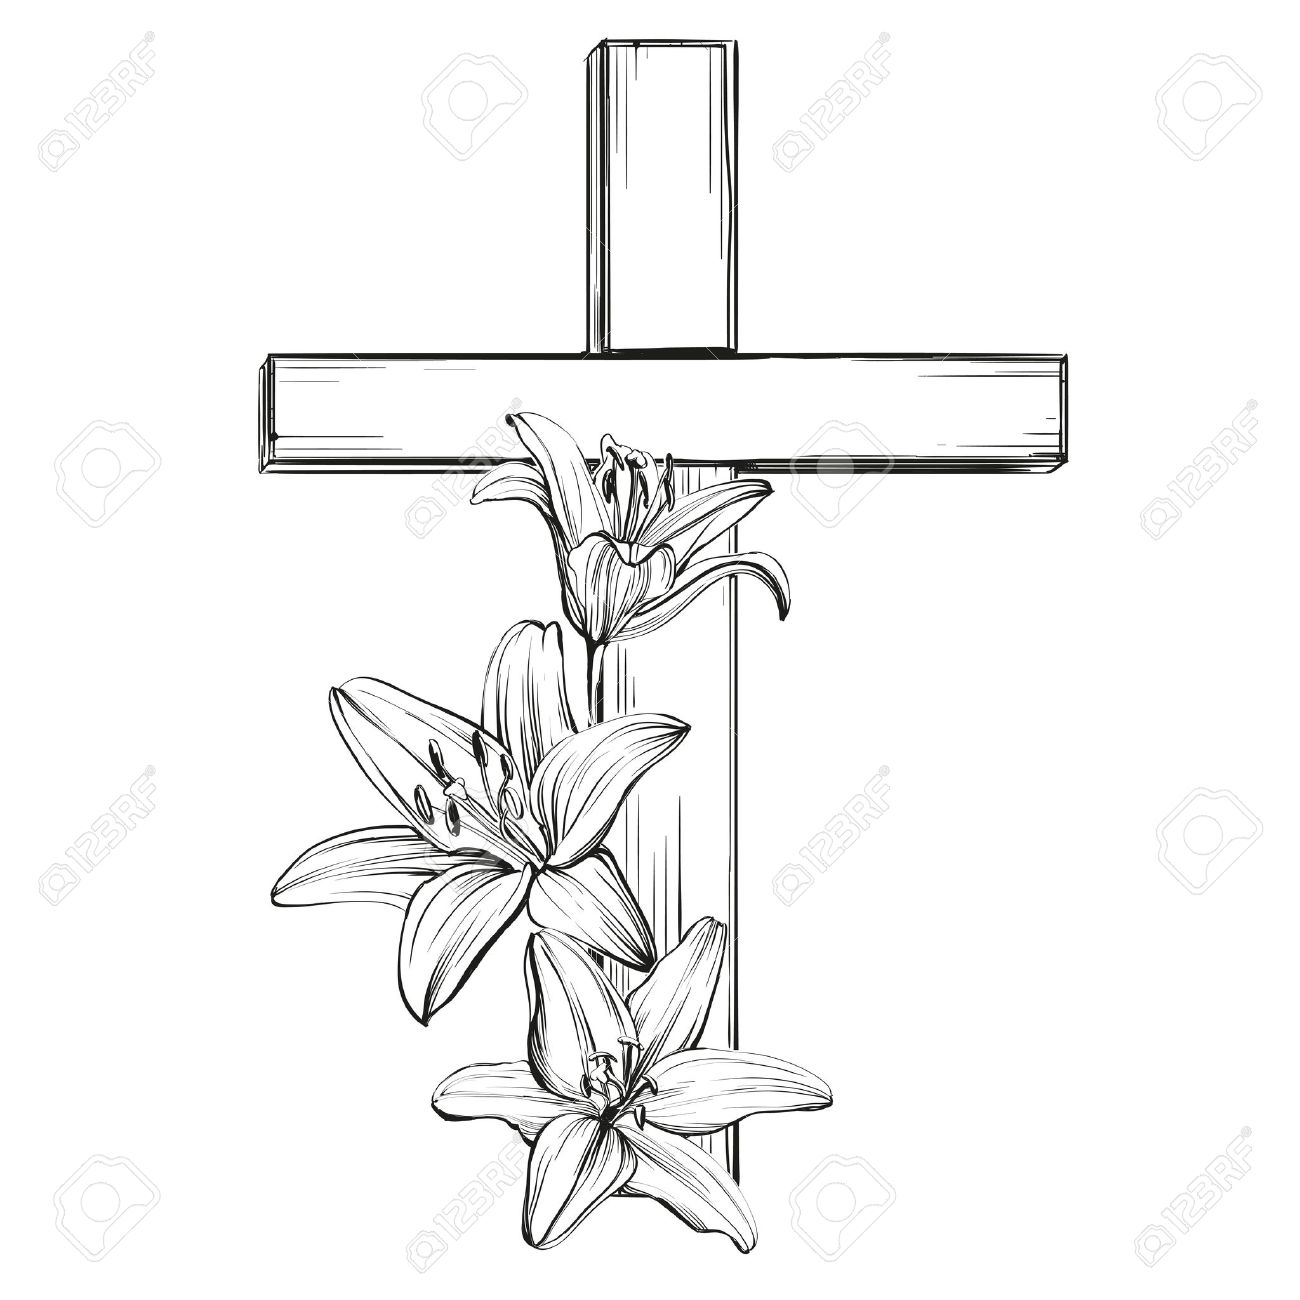 cross and floral blooming lilies, a symbol of Christianity hand drawn vector llustration sketch - 67208609